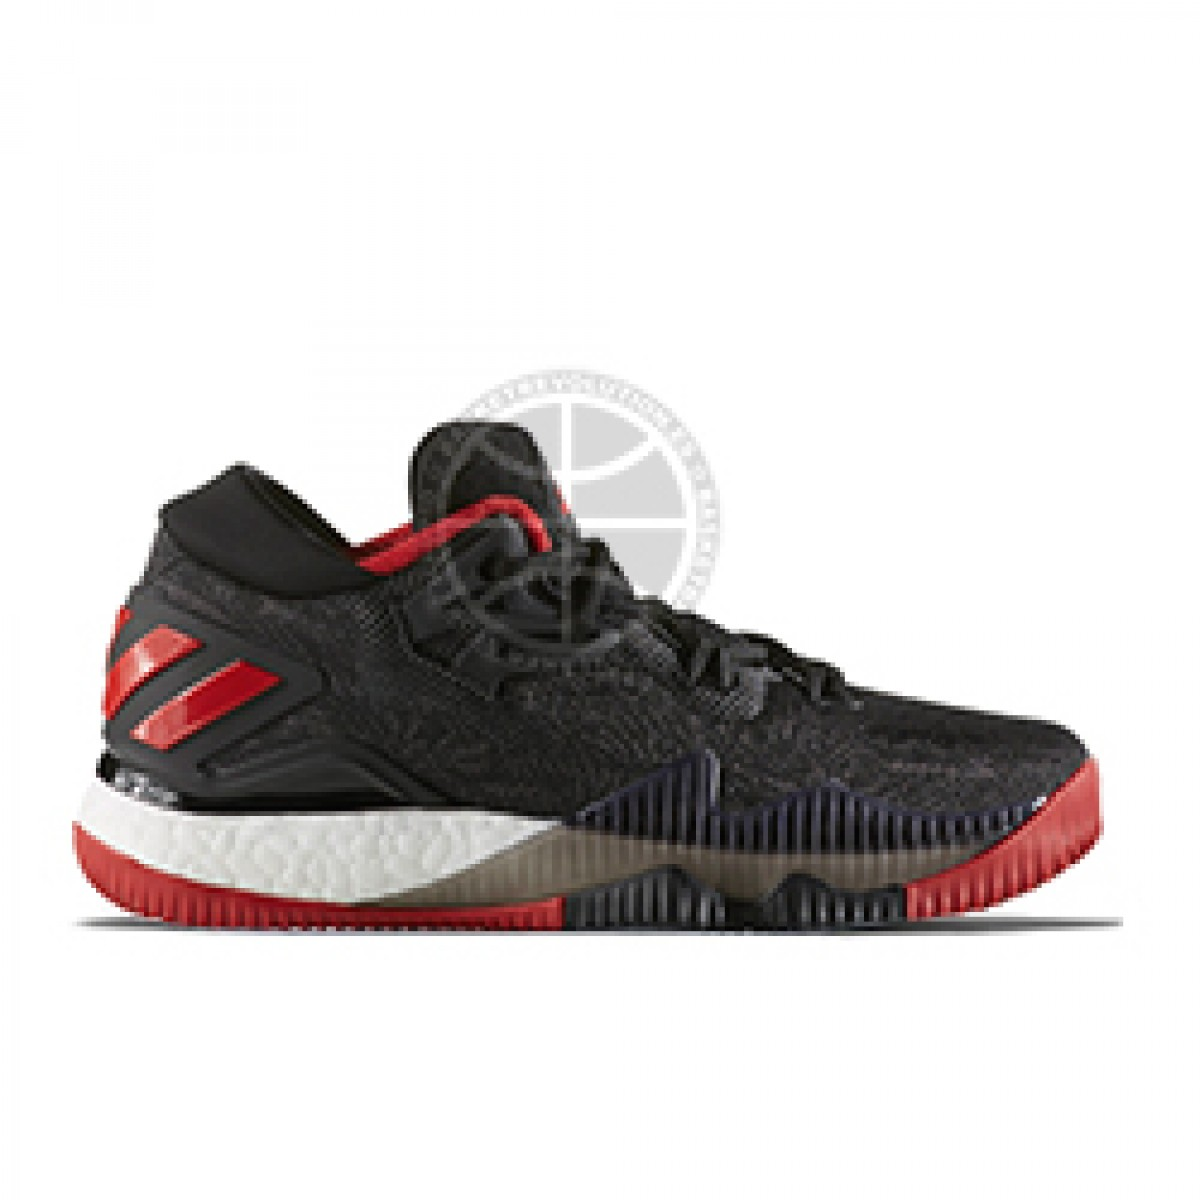 726d69b27833 Buy Adidas Crazy Light Boost Low 2016 Jr  Black Scarlet  Basketball ...